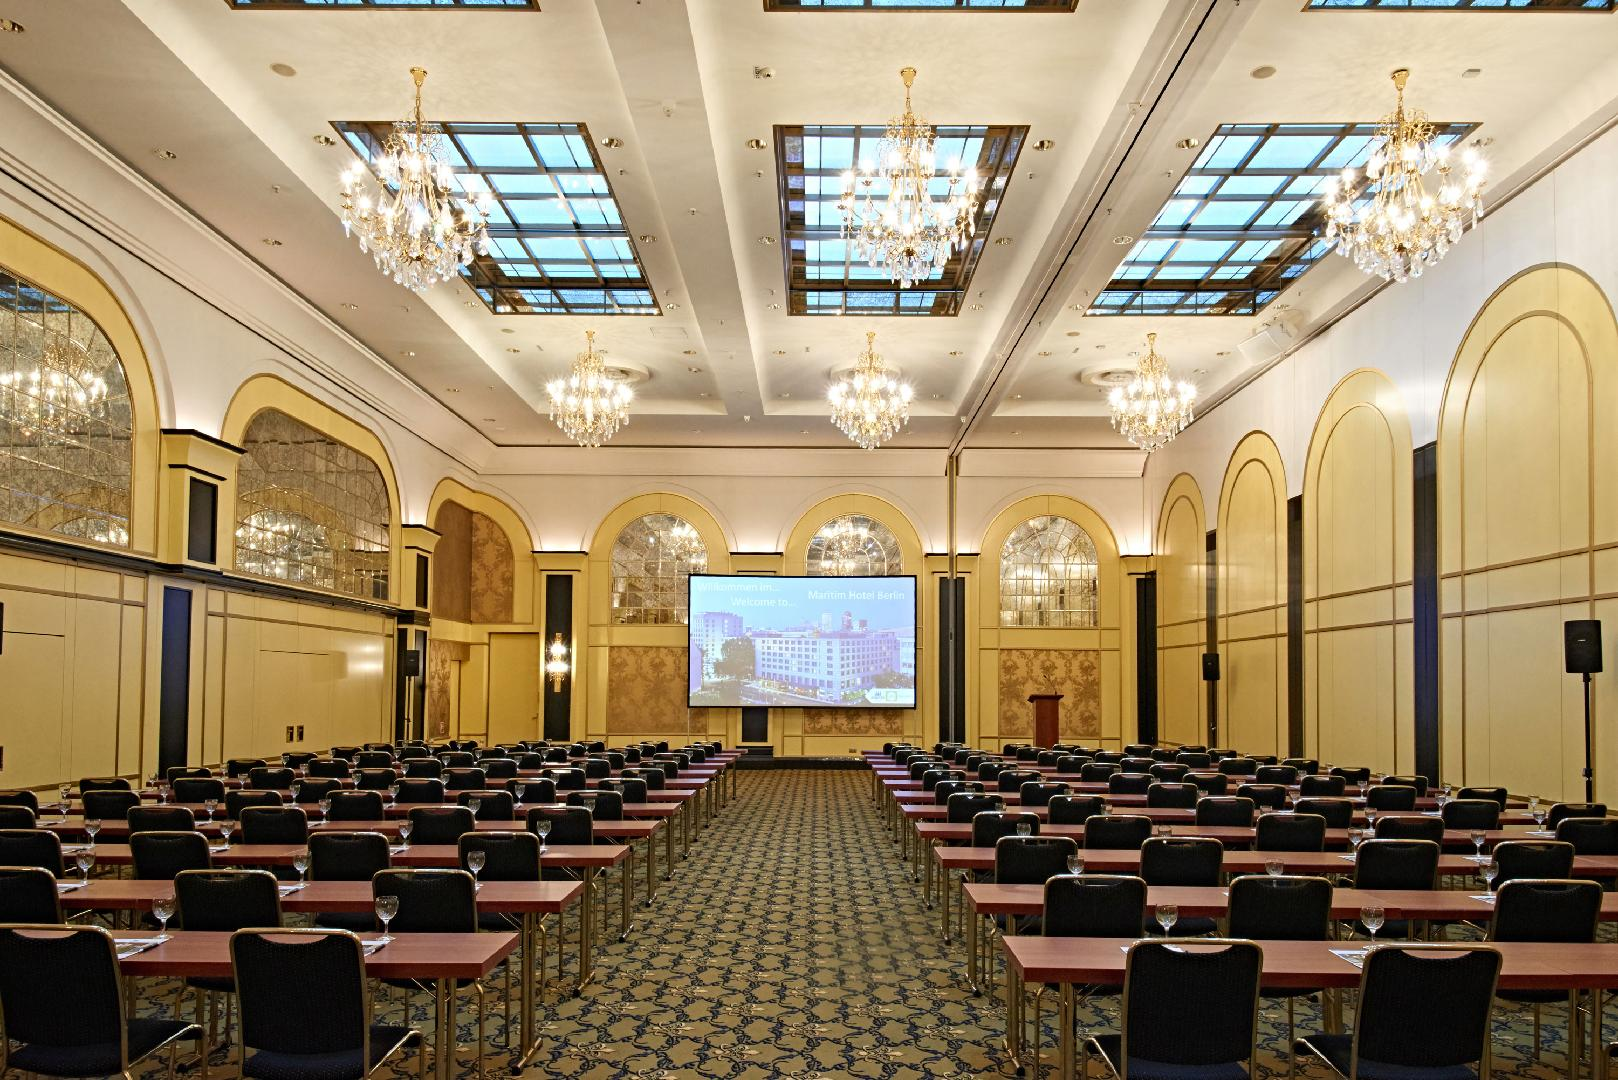 Picture 2 of Saal Berlin (Sektion C)